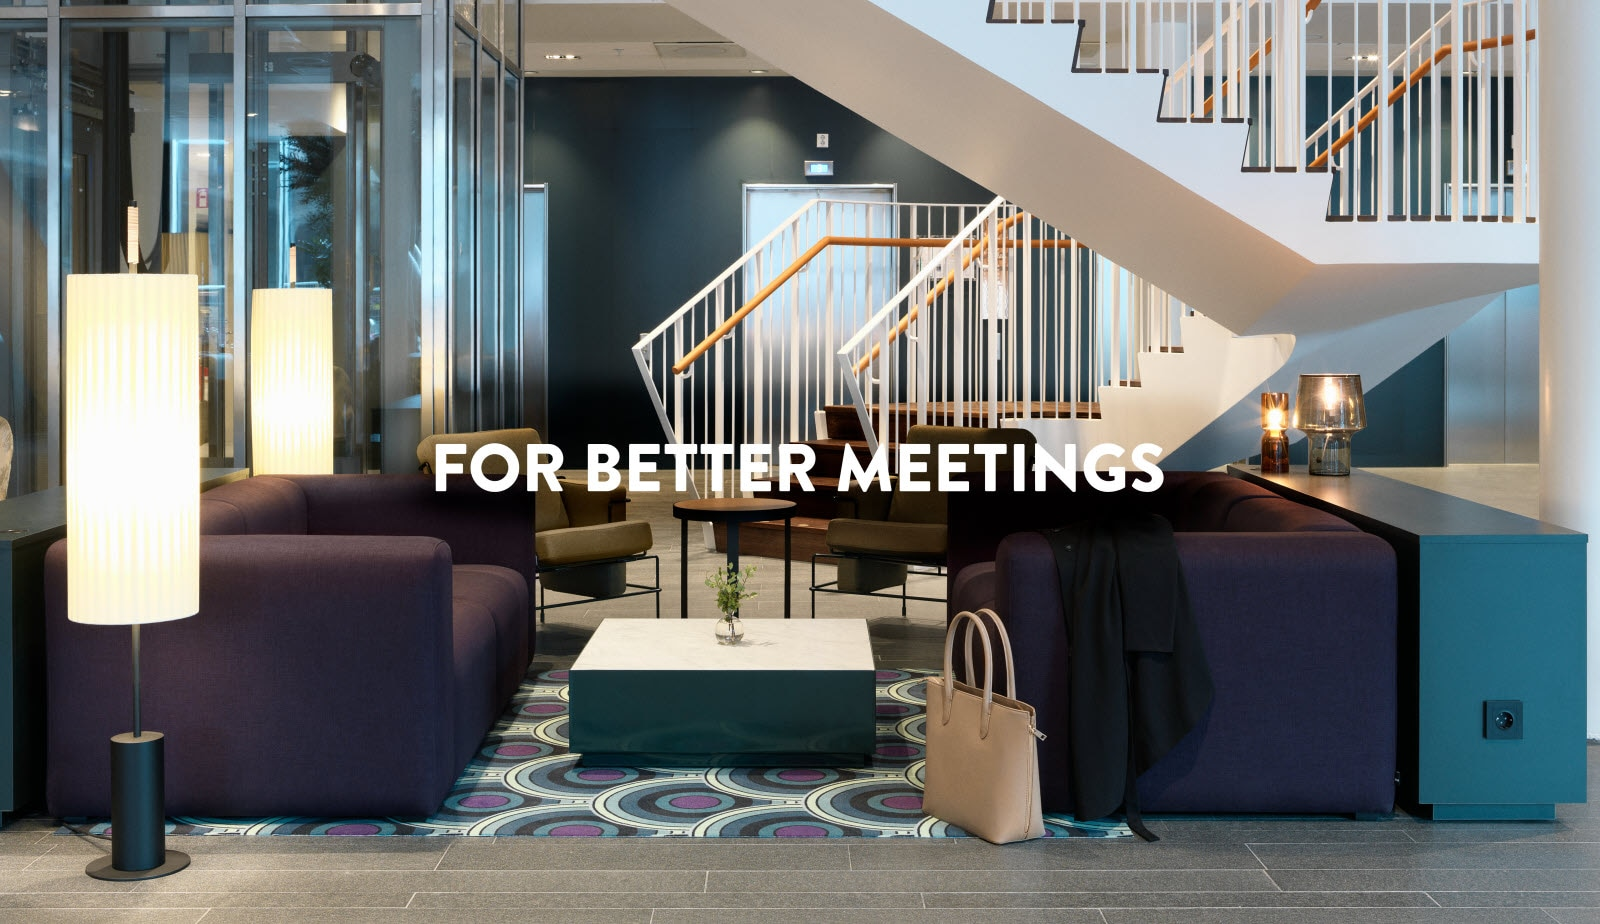 For better meetings at Scandic Continental